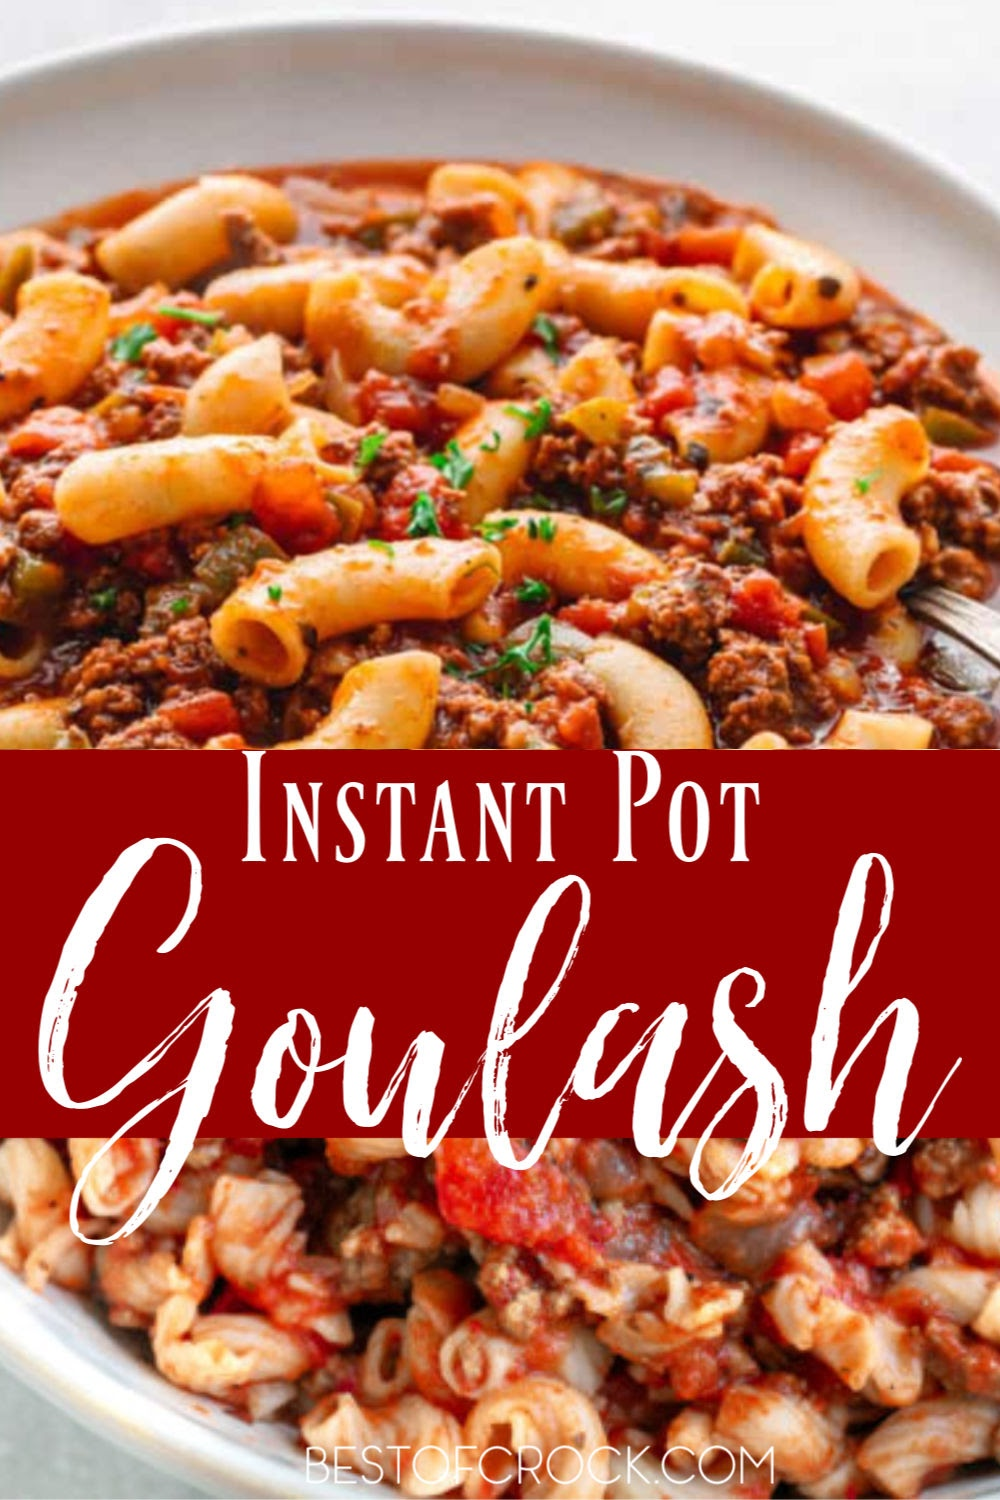 It is easier than you may think to make Instant Pot goulash recipes for family dinners or even as date night dinners that will surely impress. Easy Ground Beef Recipes | Pressure Cooker Goulash | Ground Beef Dinner Recipes | Ground Beef Pasta Recipe | Goulash Recipes Easy Ground Beef #instantpot #recipe via @bestofcrock